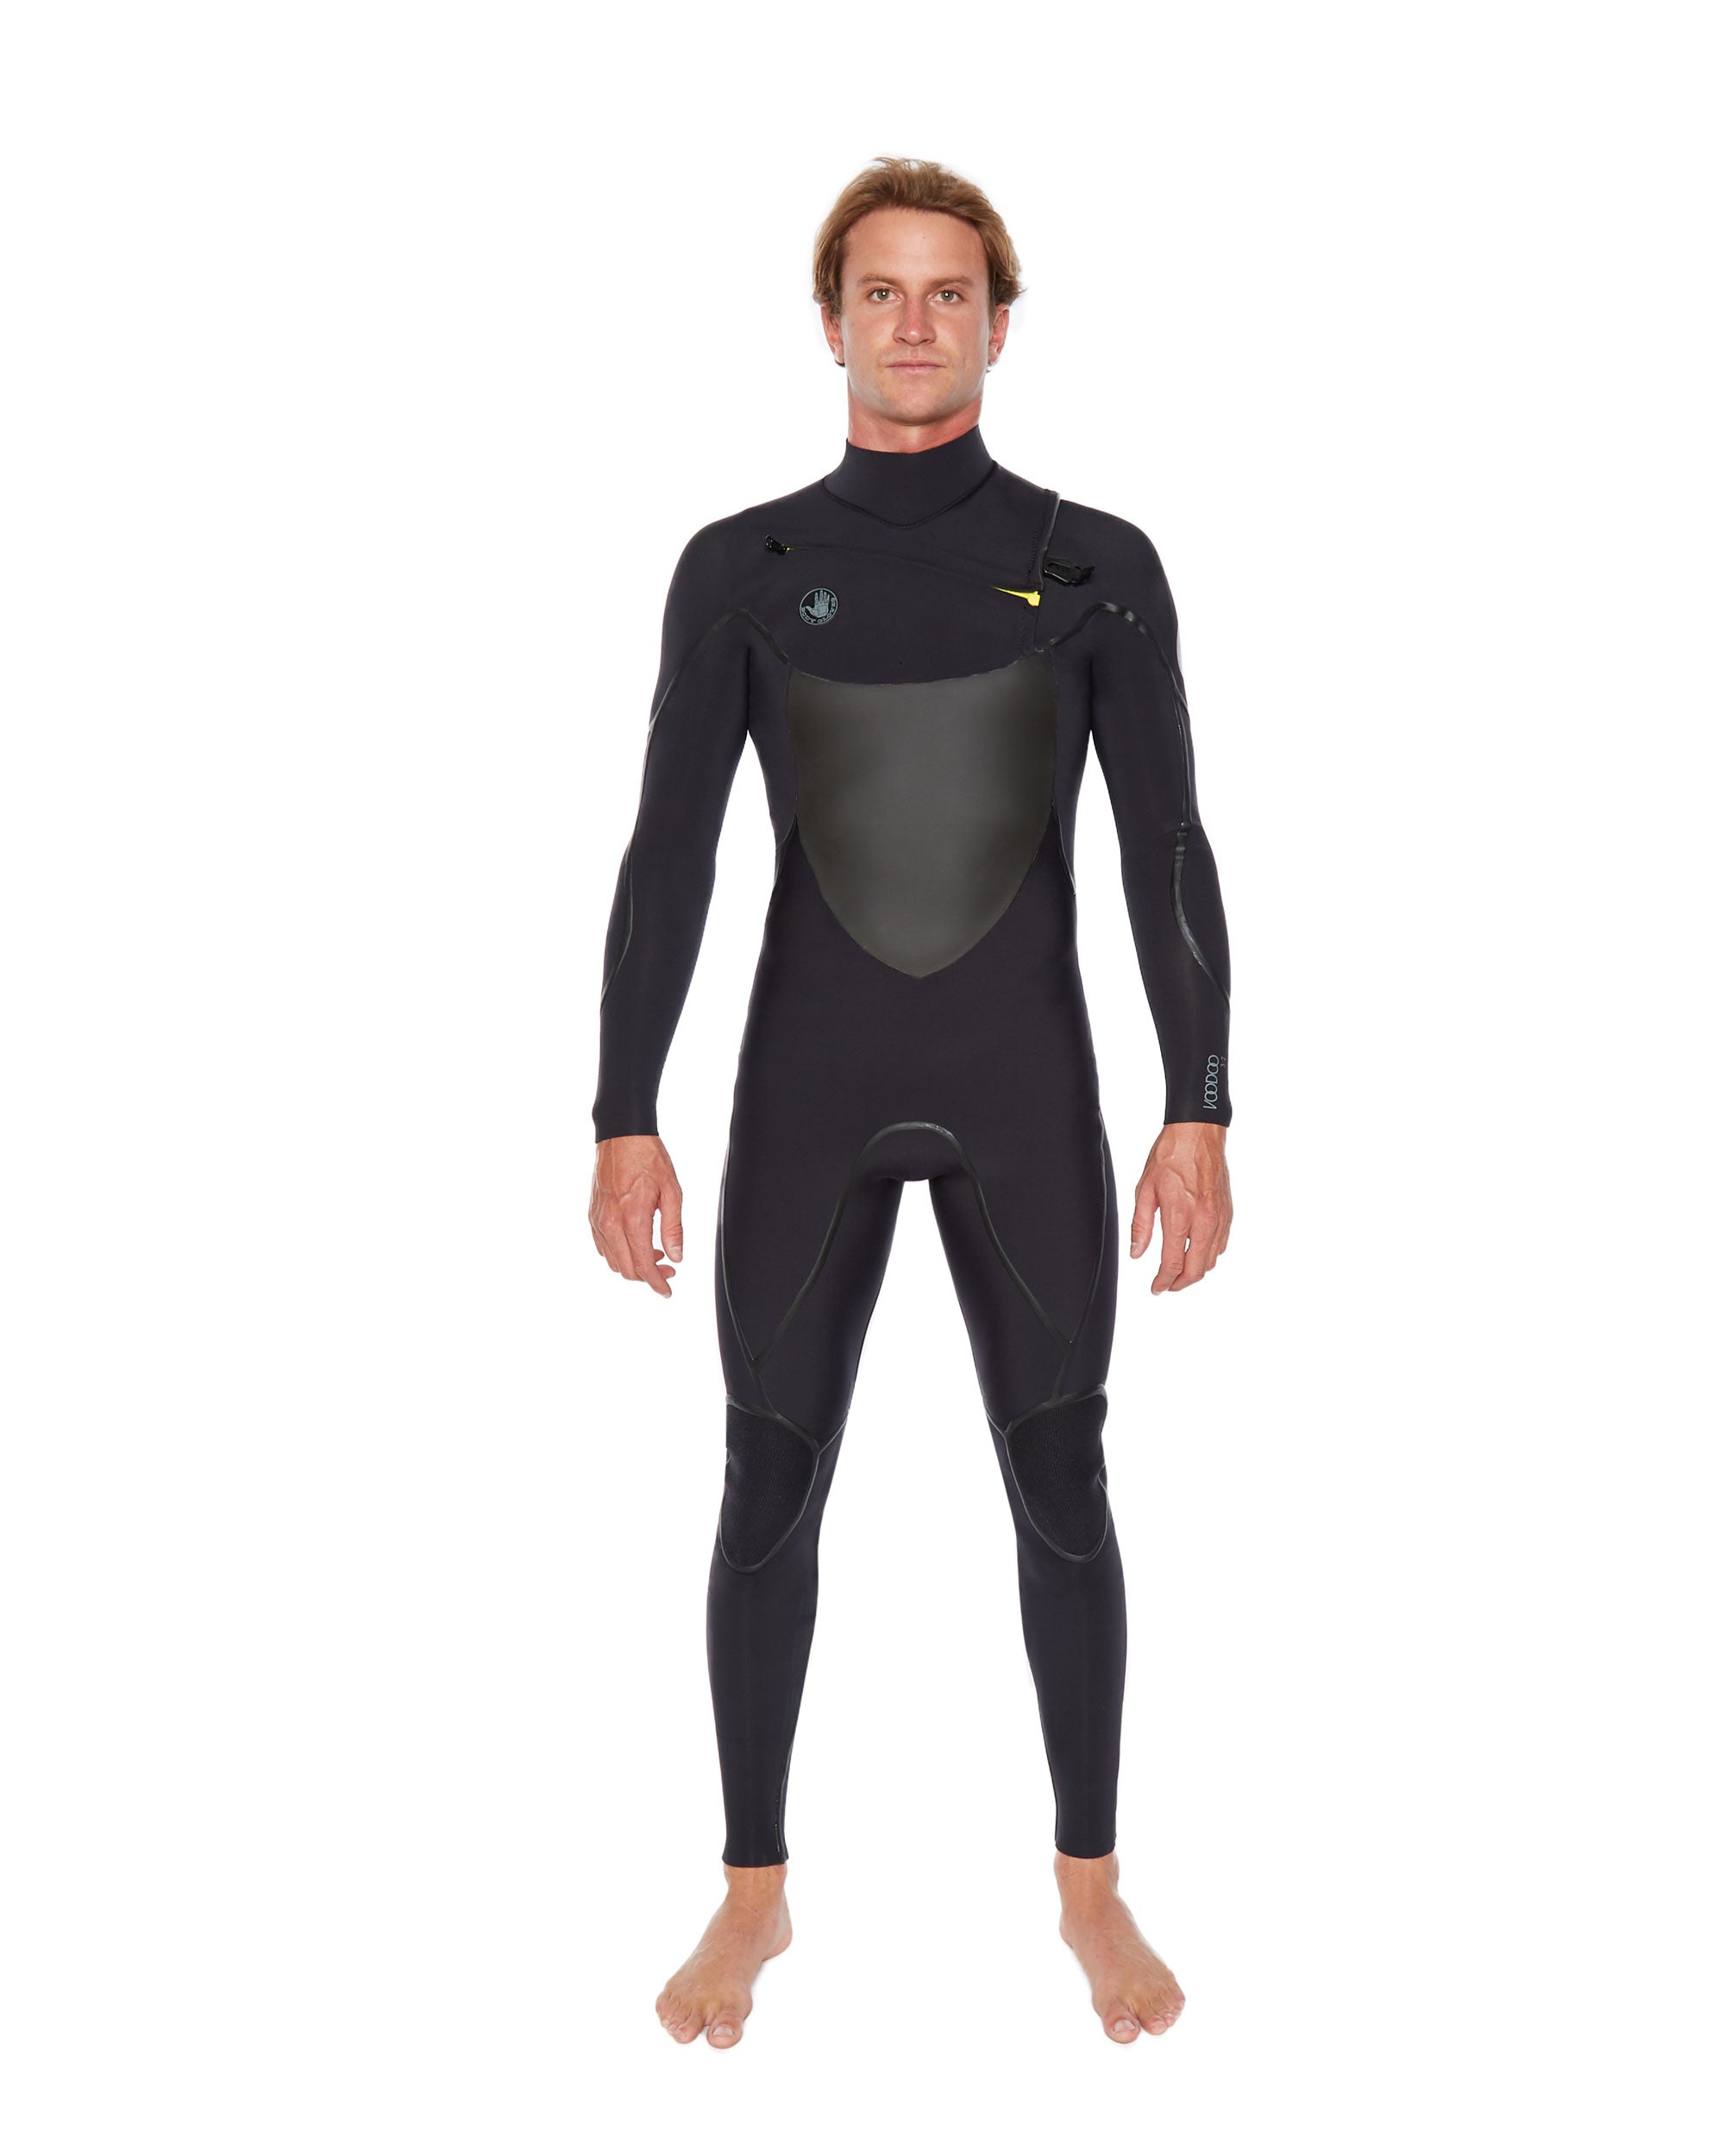 Voodoo Slant-Zip Men's Fullsuit 3/2mm - Black